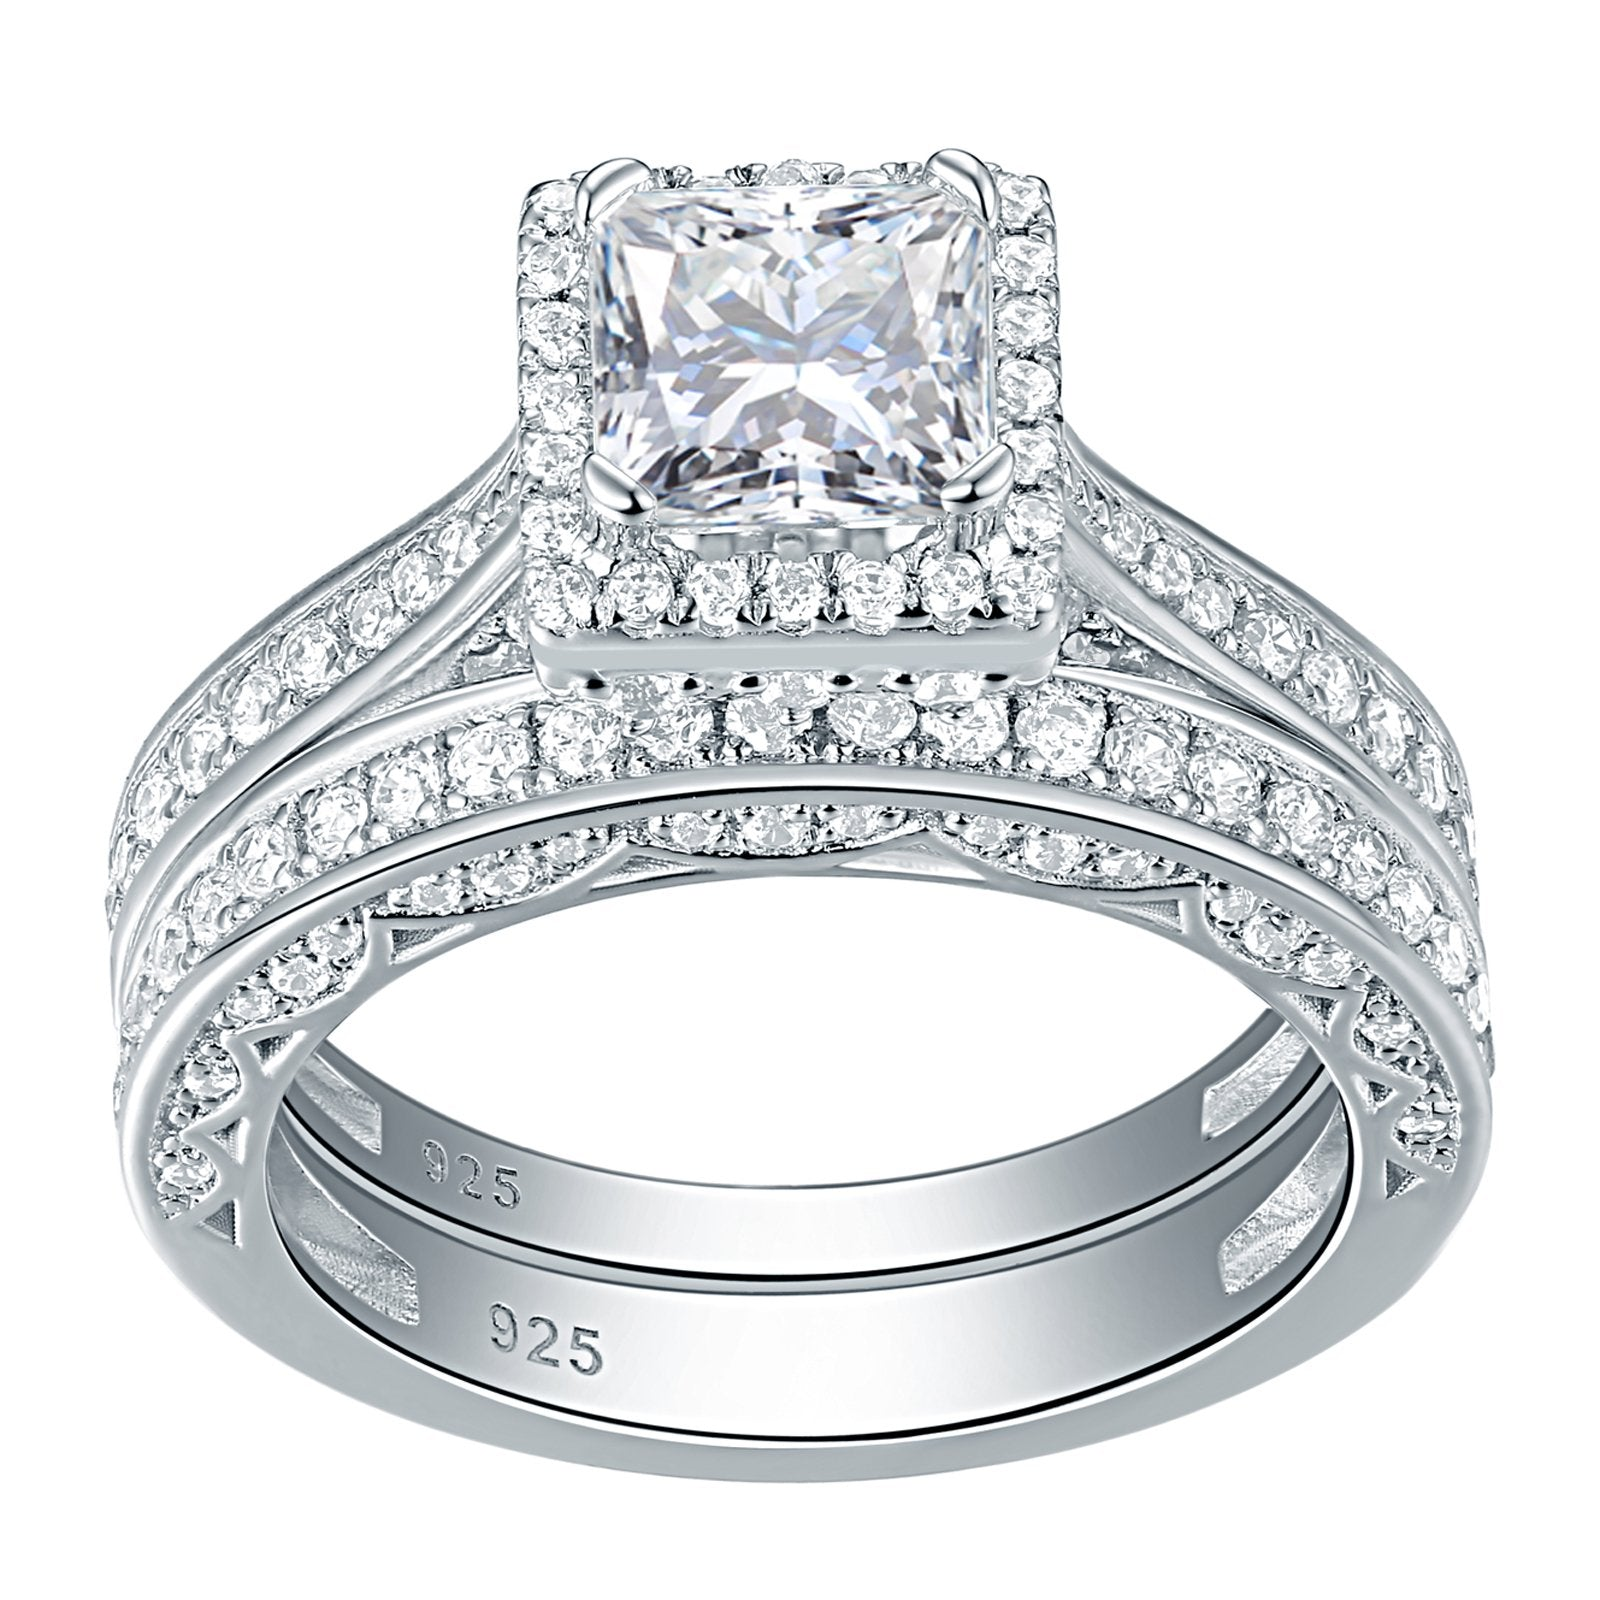 Engagement Wedding Ring Set for Women